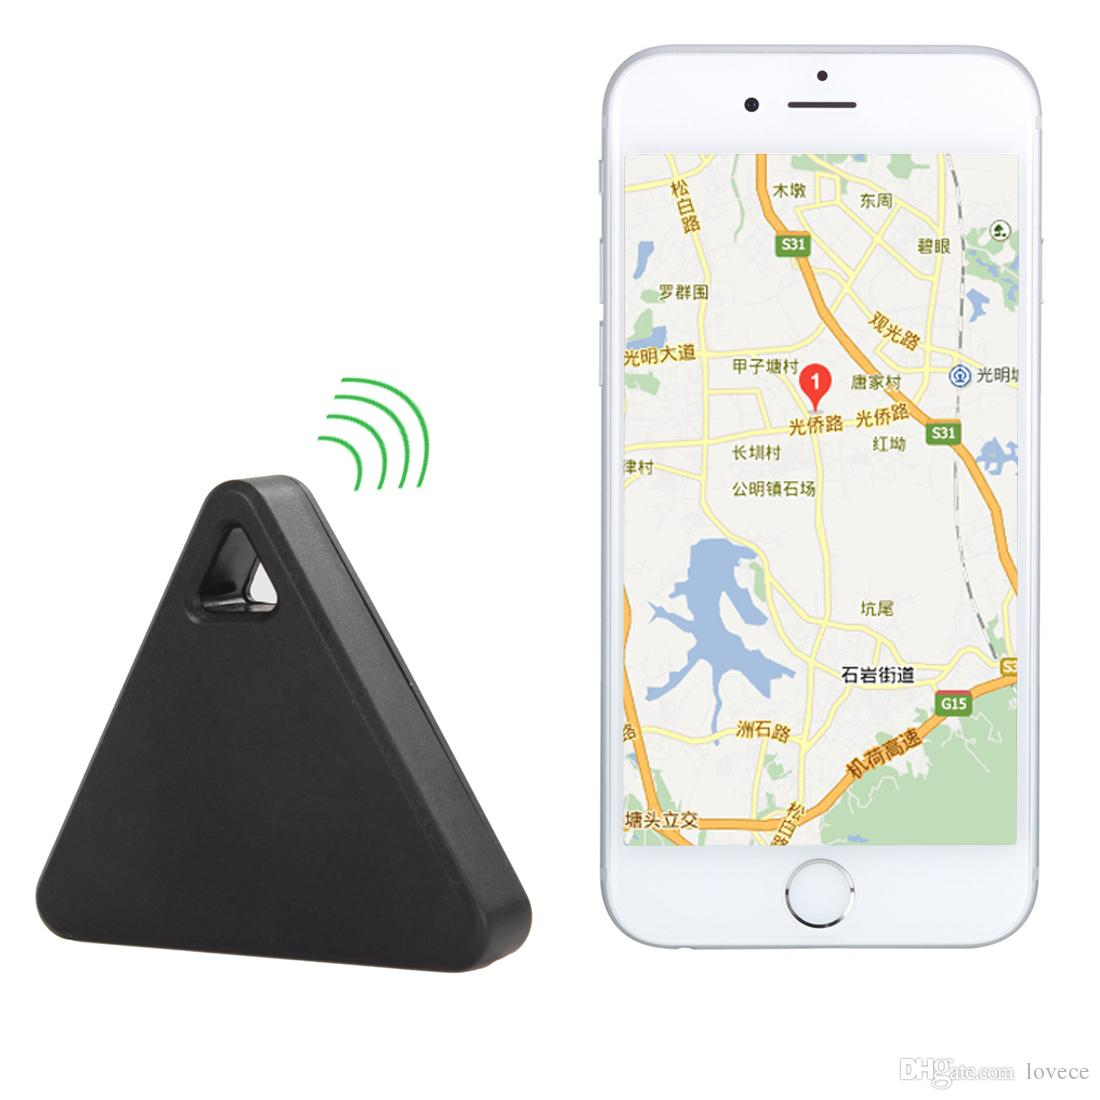 iTag Smart Wireless Bluetooth 4.0 Tracker GPS Locator Anti Lost Alarm For Car Bag Dog Pets Black Color LIF_821